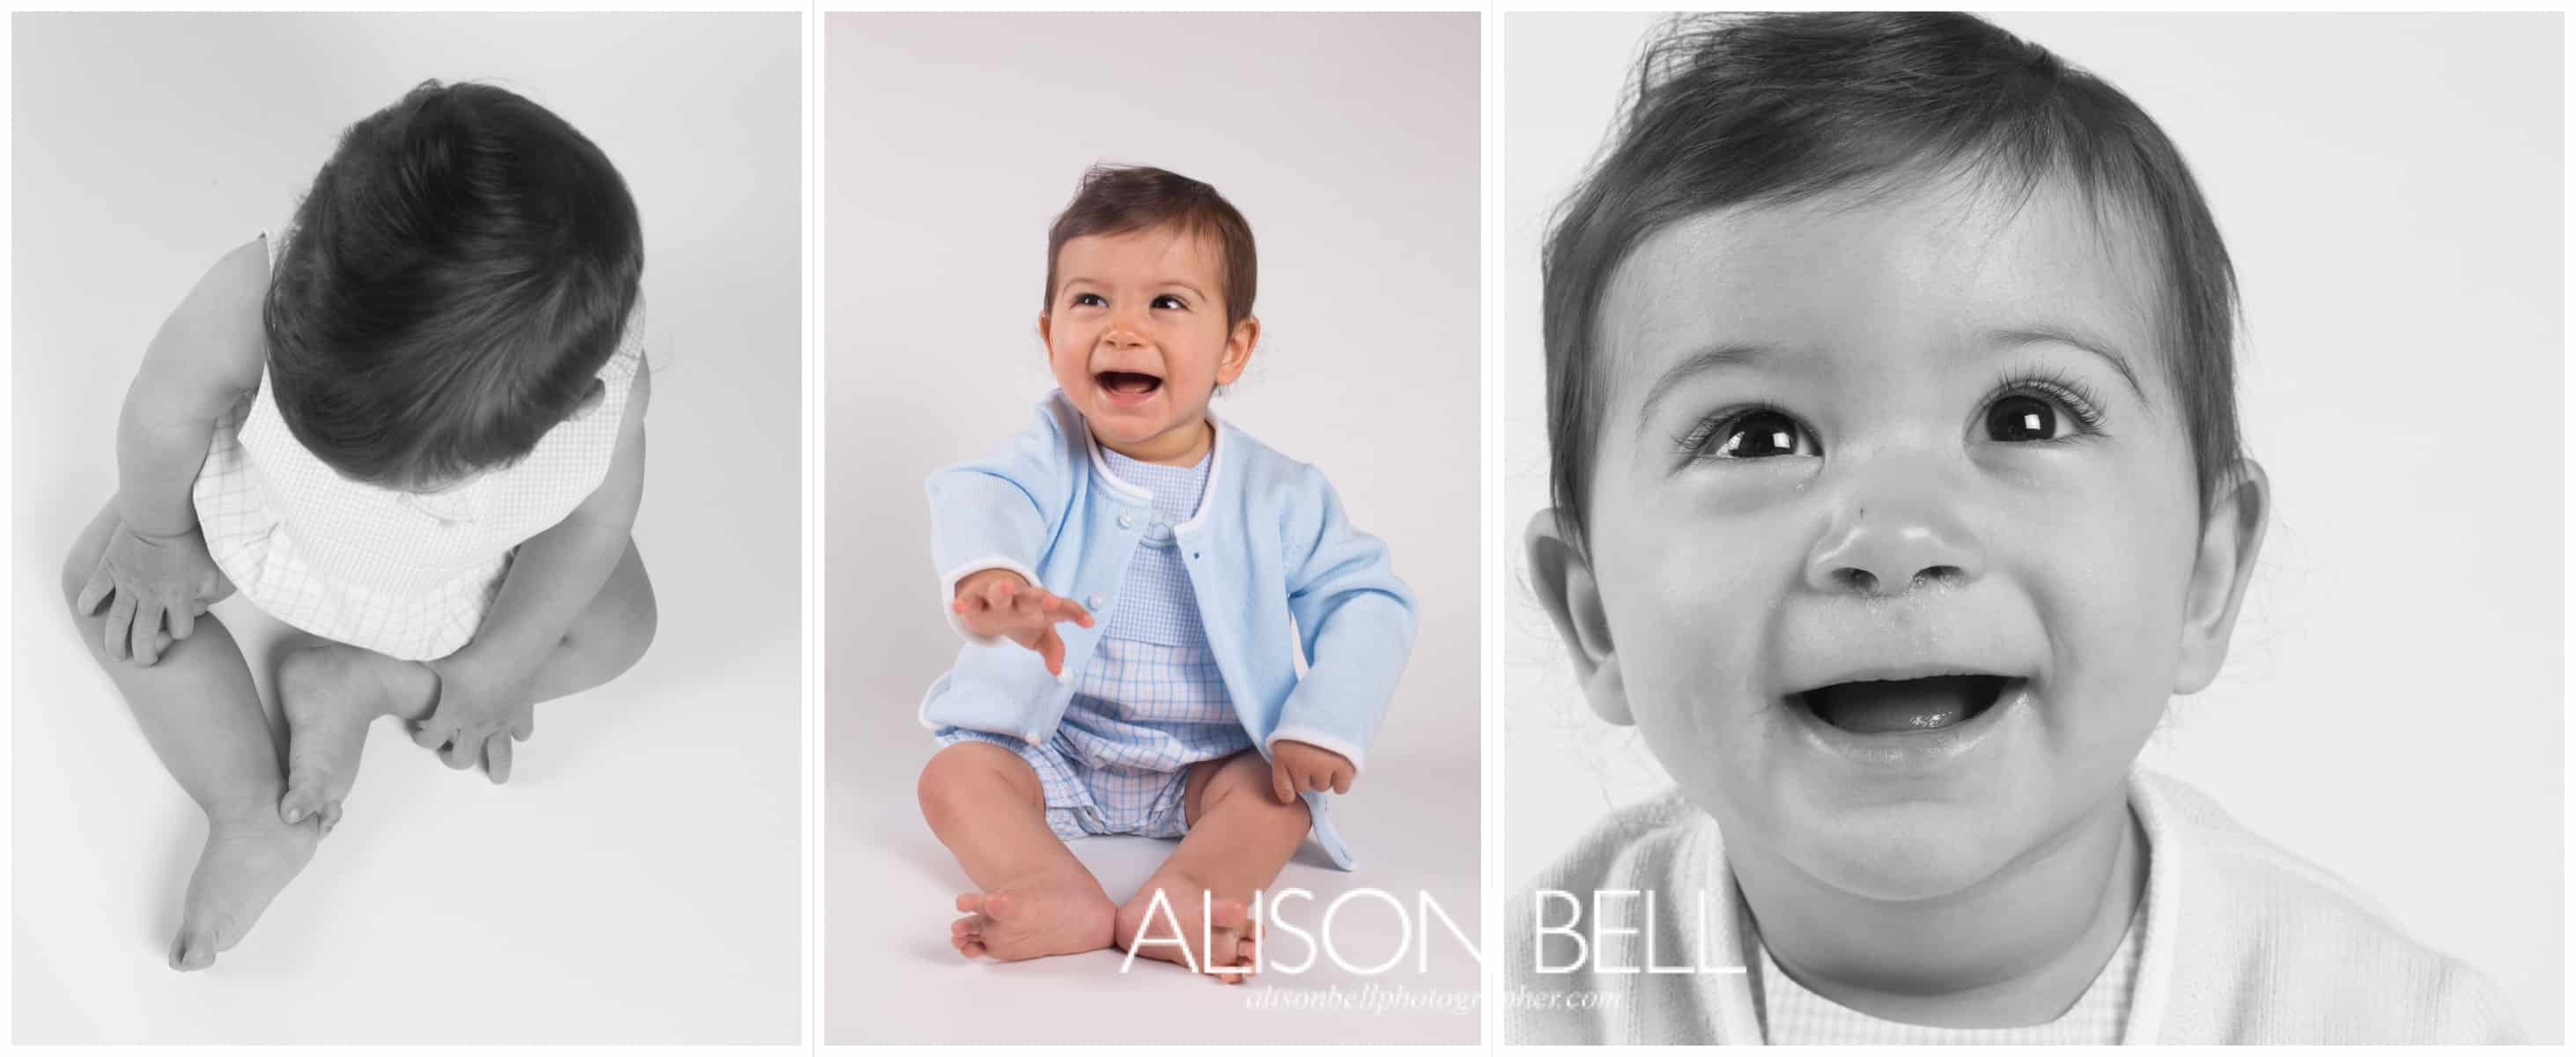 Alison Bell Photographer | Baby & Child Photographer